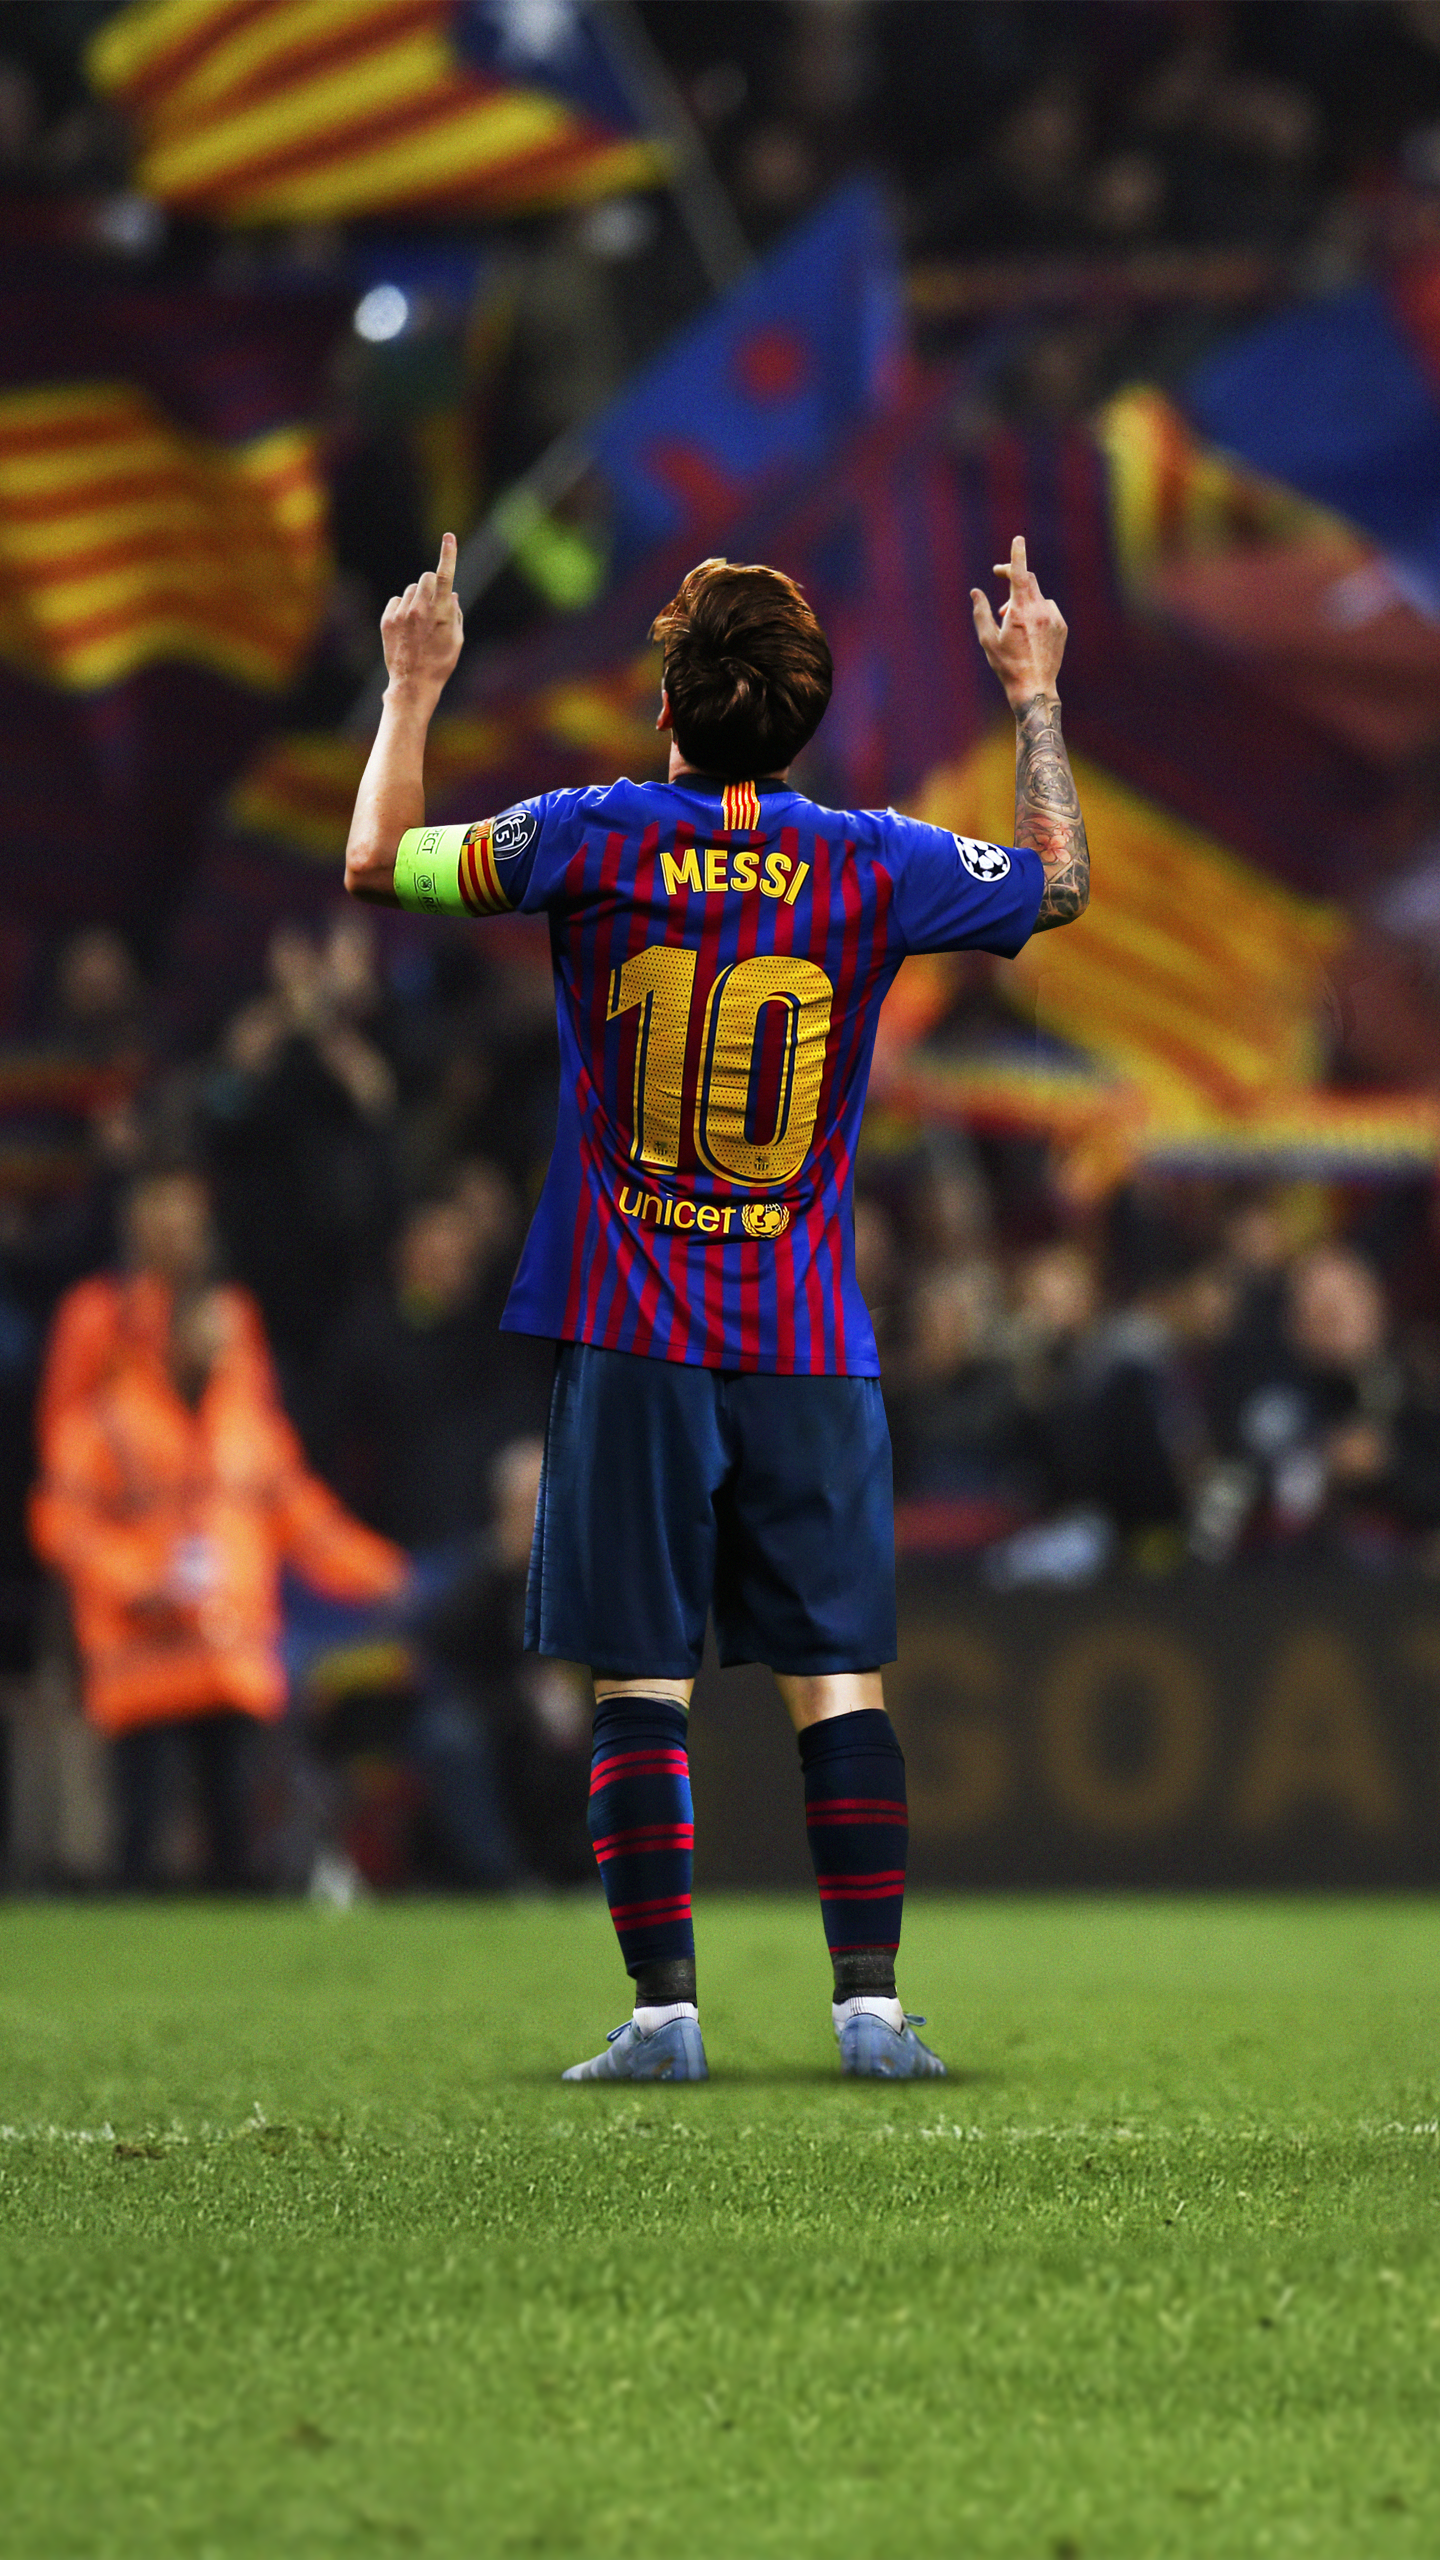 SportsLionel Messi 1440x2560 Wallpaper ID 755896   Mobile Abyss 1440x2560